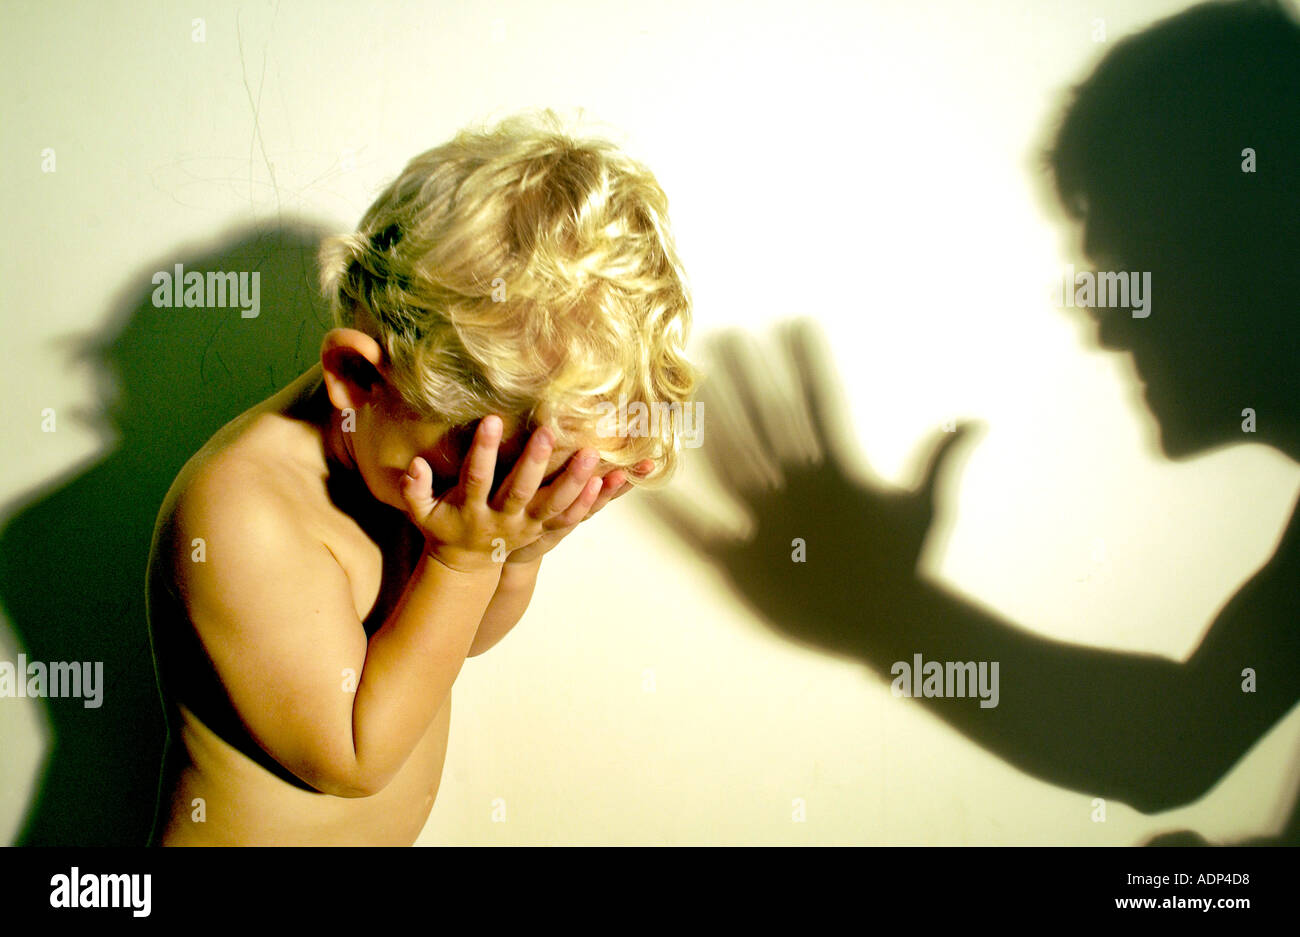 A tearful blonde child being threatened and the shadow of his abuser - Stock Image